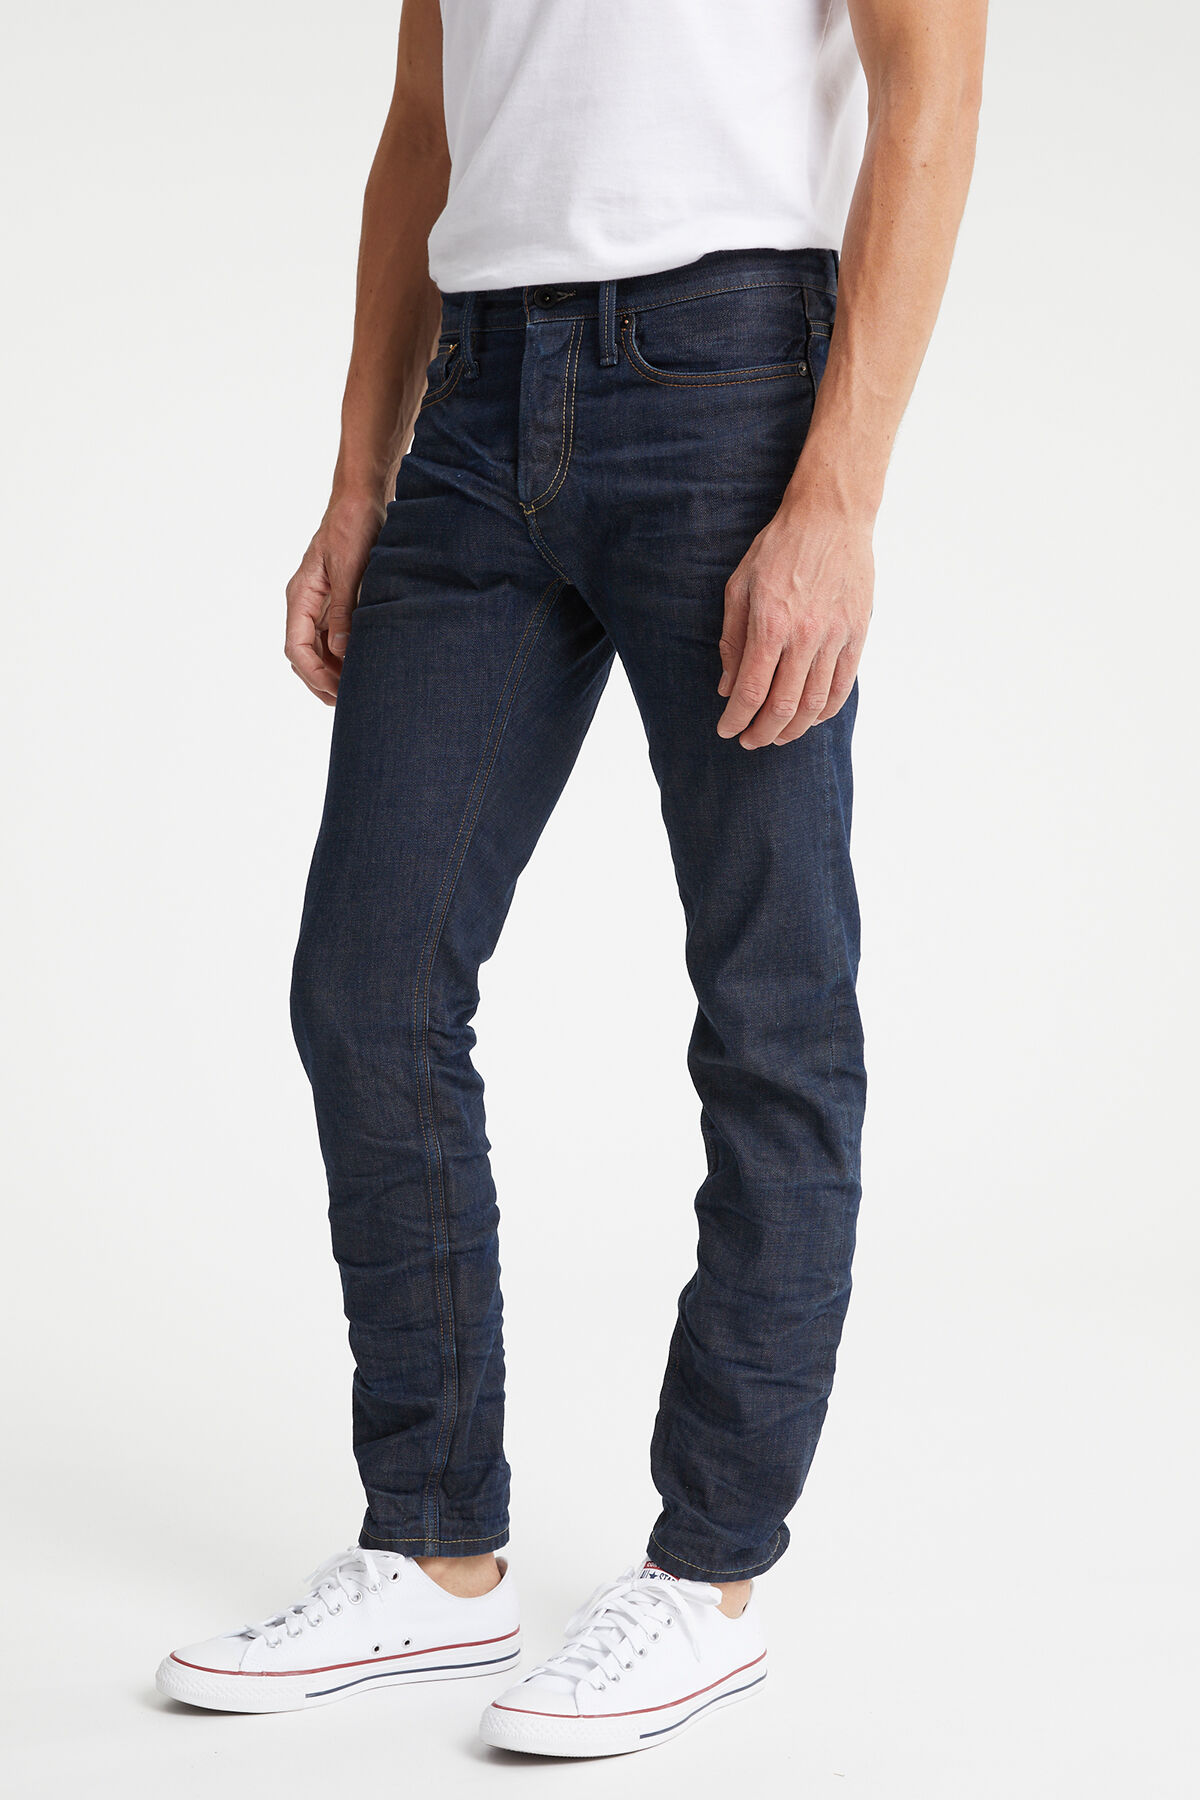 RAZOR Authentic Selvedge Denim - Slim Fit